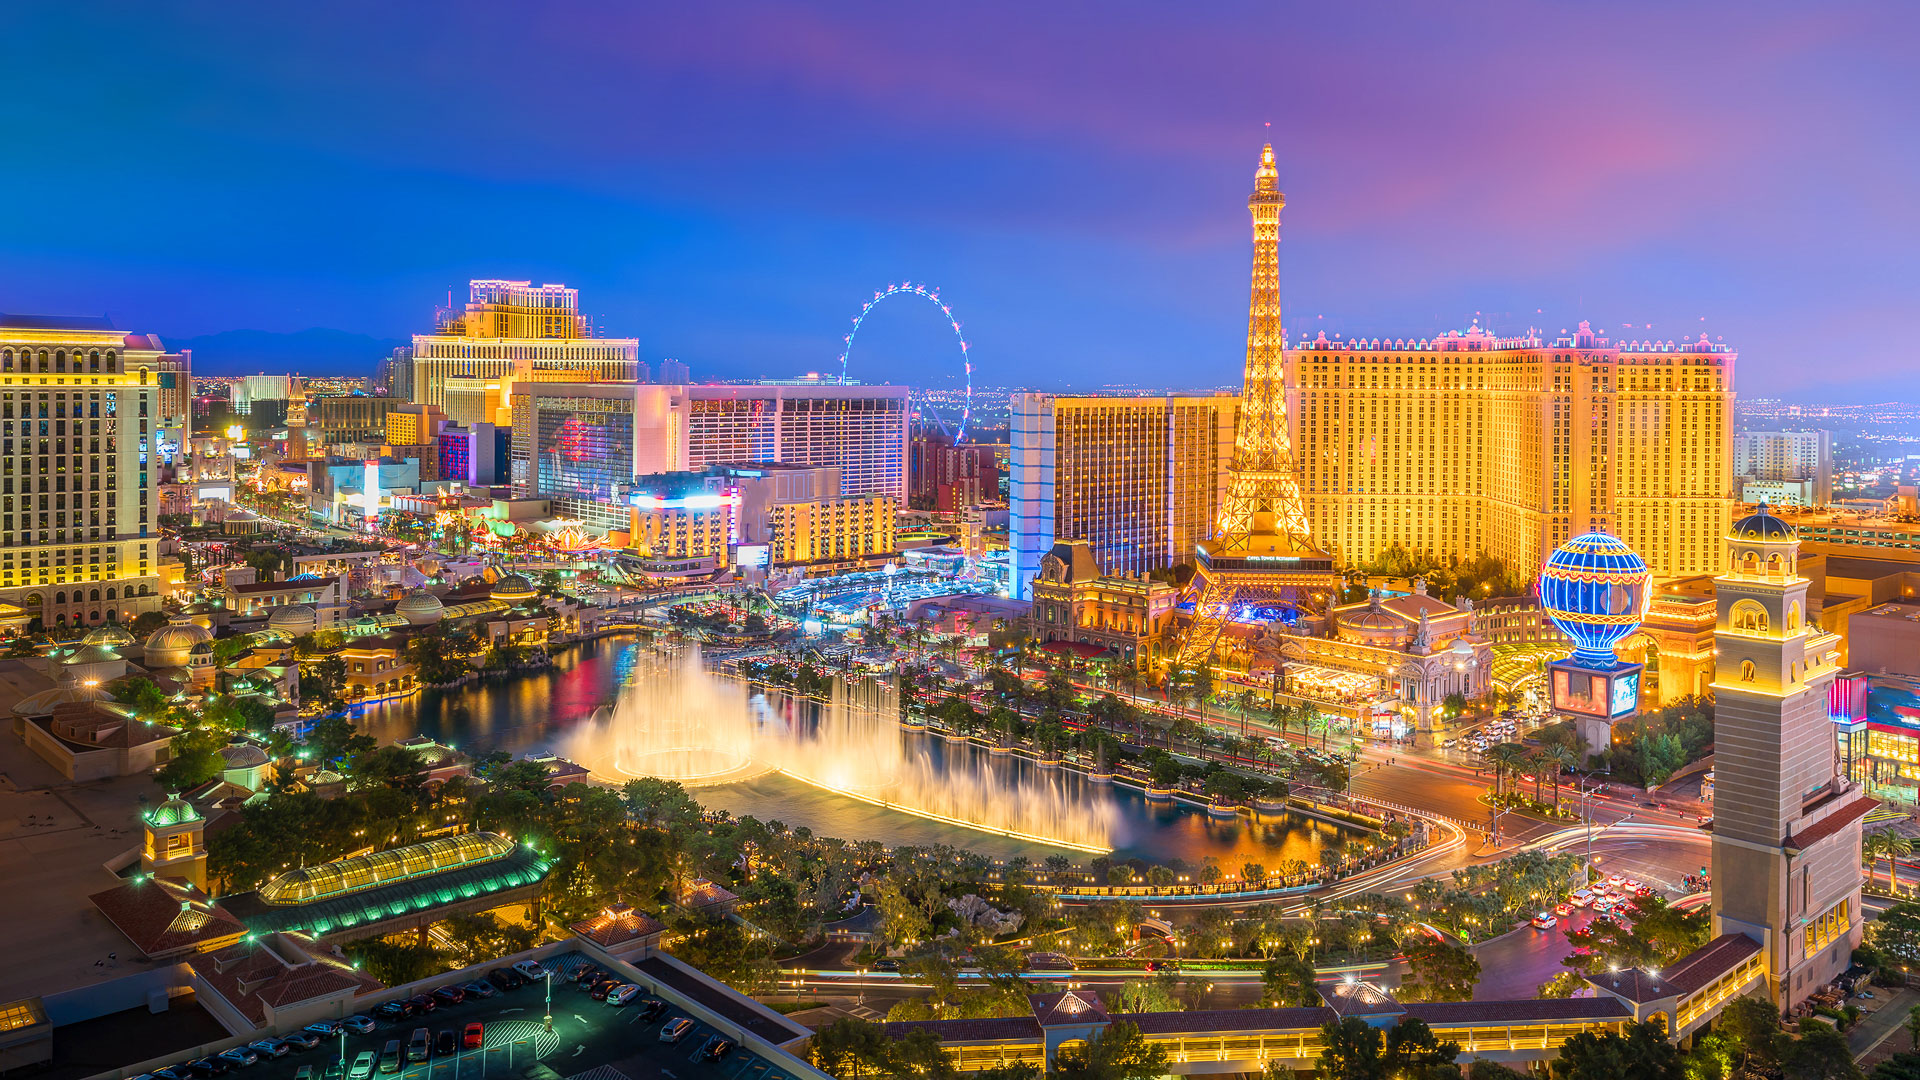 Slide 3 of 32: Meals: $330Drinks (including beer): $50.763-night hotel stay: $328Airfare: $484.82Sin City is another one of the best U.S. cities to visit, and there are many fun and free things to do in Vegas. Take in fabulous fountains and flora for free at the Bellagio, which features a conservatory in addition to its famous fountains. Or, just walk down the infamous Strip and marvel at the street performers and bright lights.